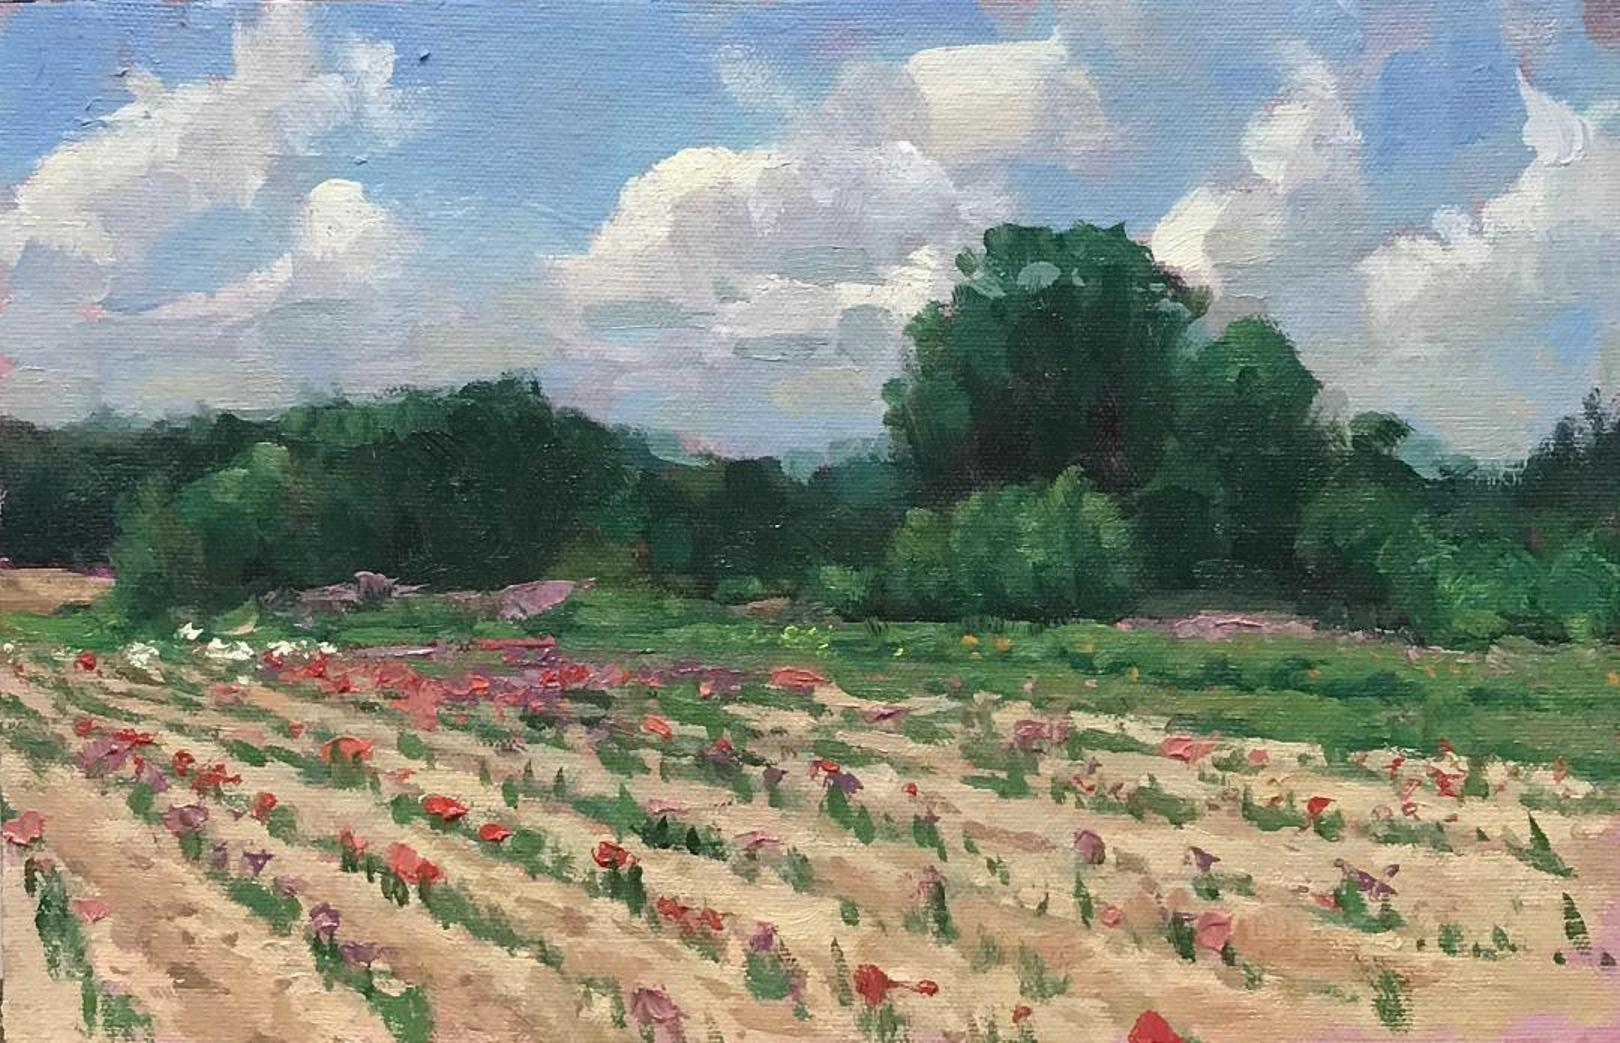 Floral Landscape Flower Fields I Impressionistic Oil Painting by Michael Budden